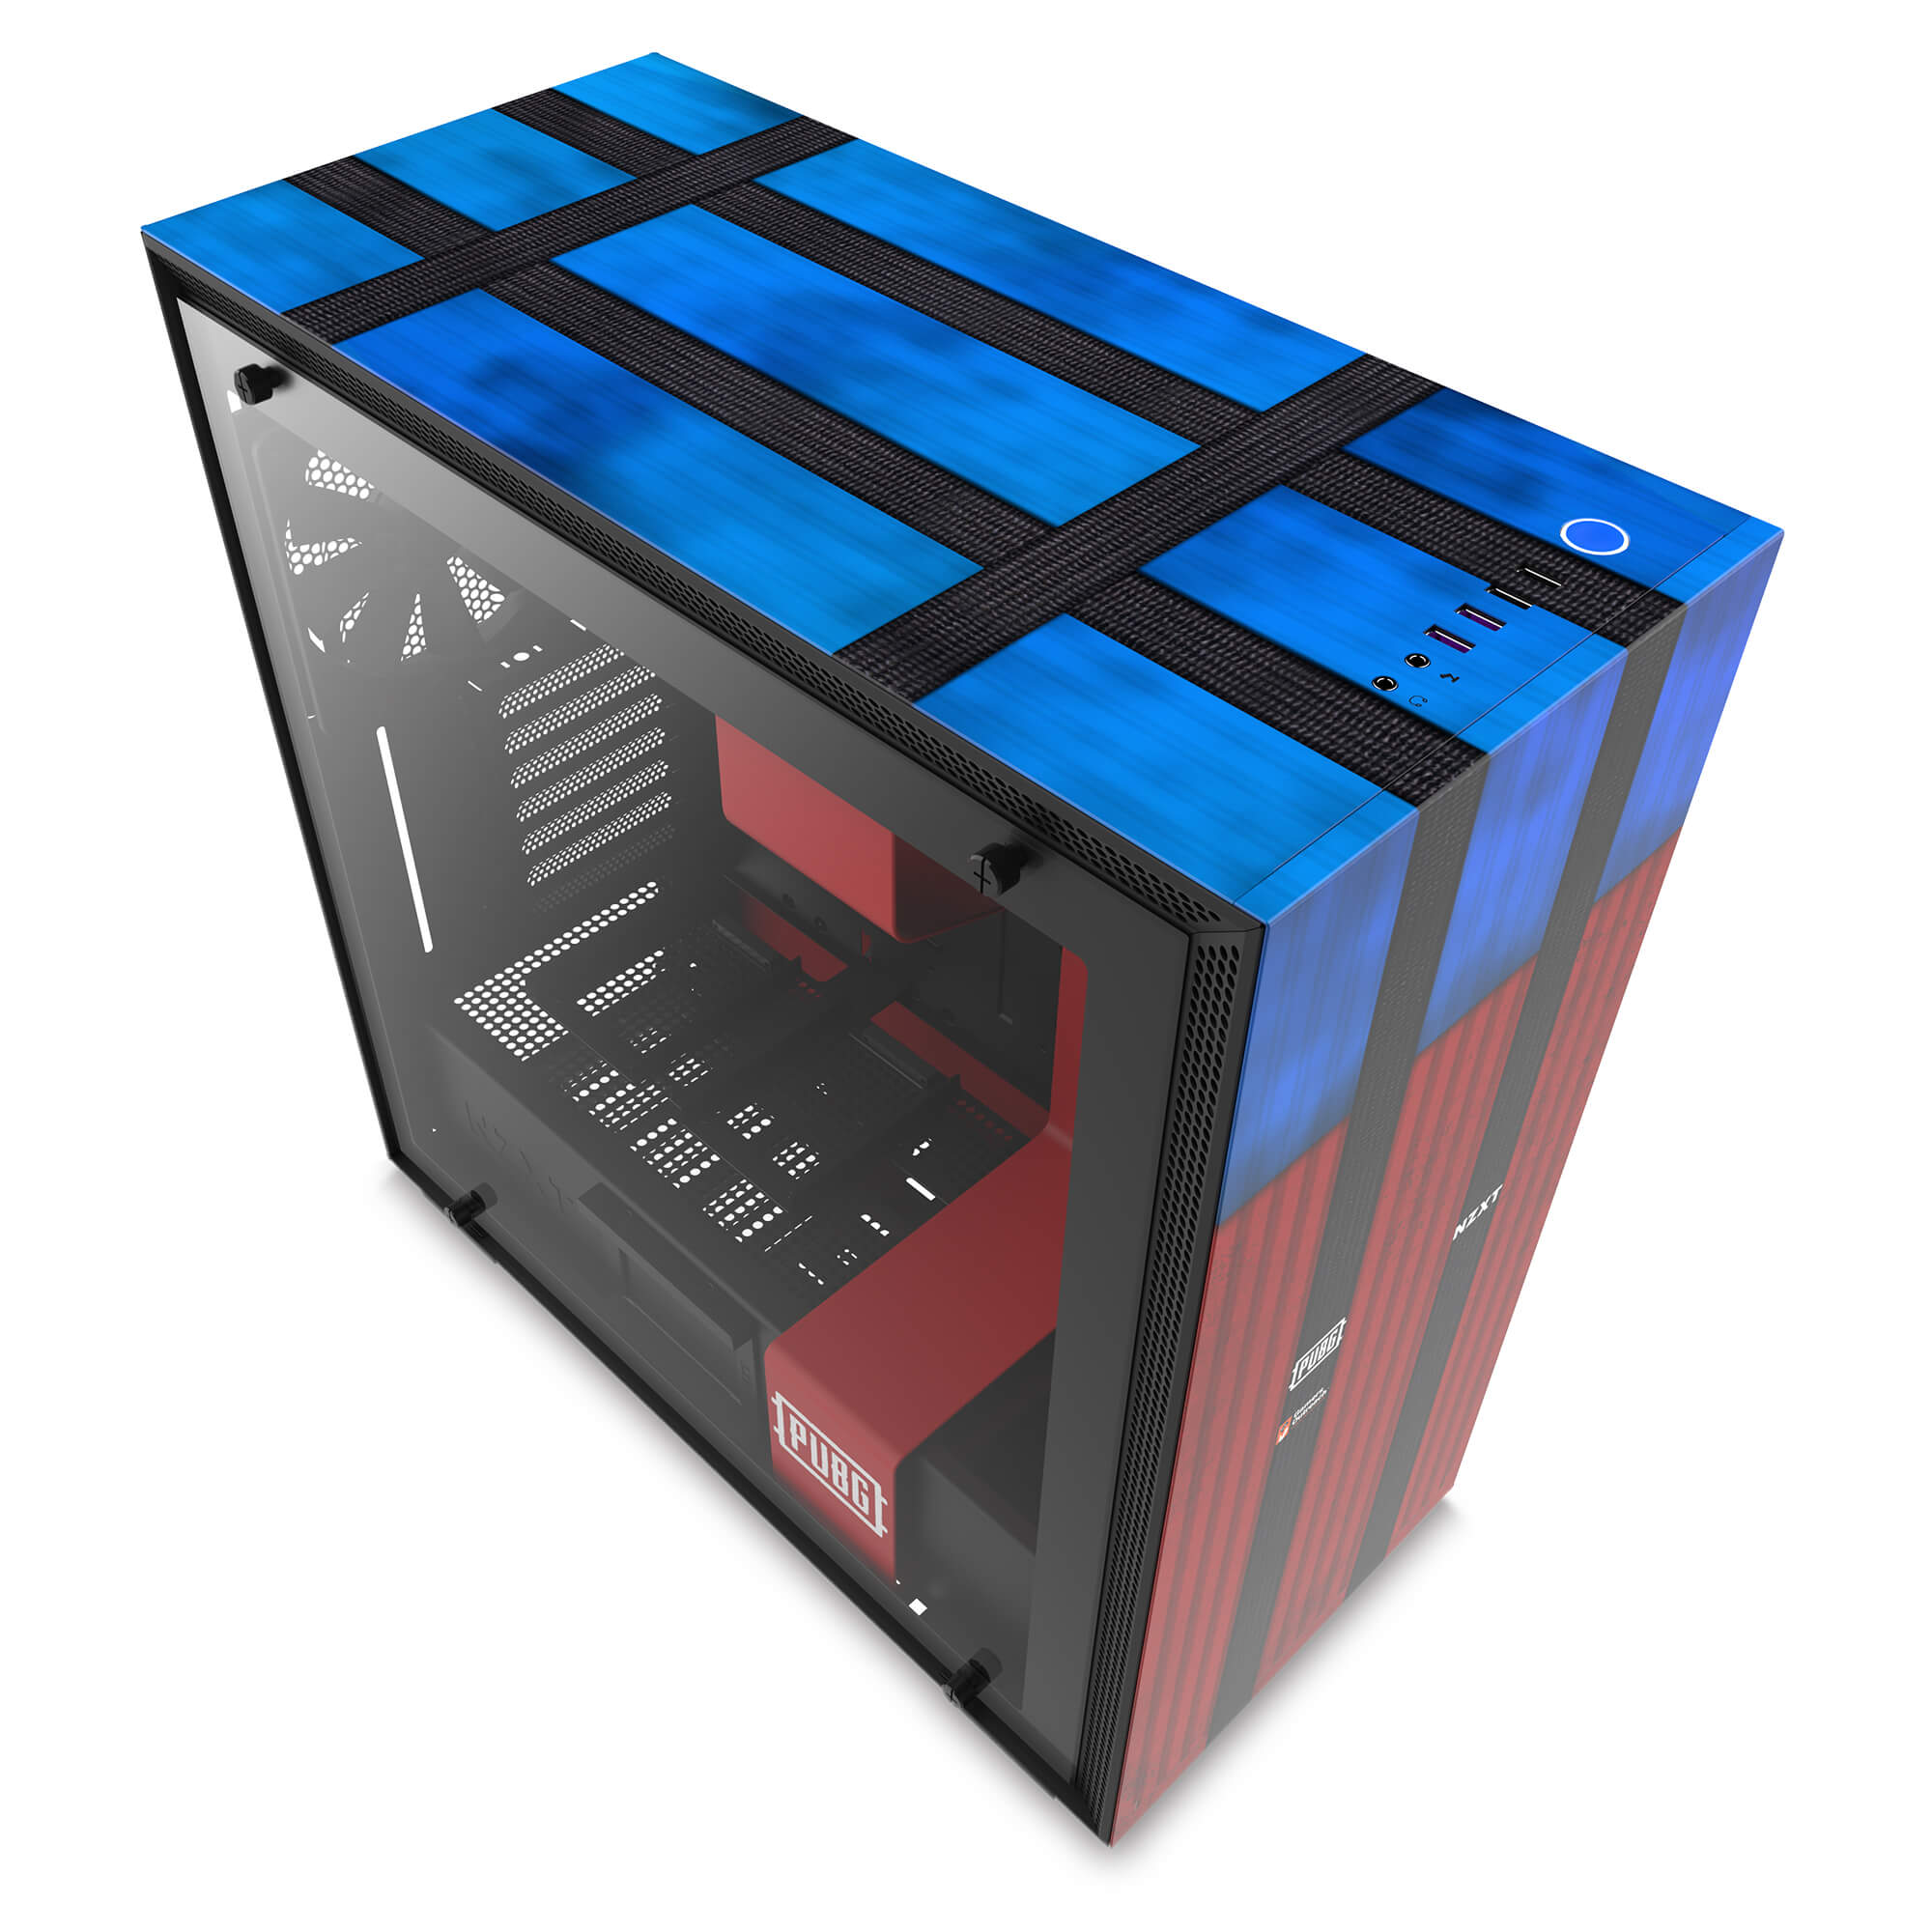 NP: NZXT presenta CRFT, productos gaming customizados